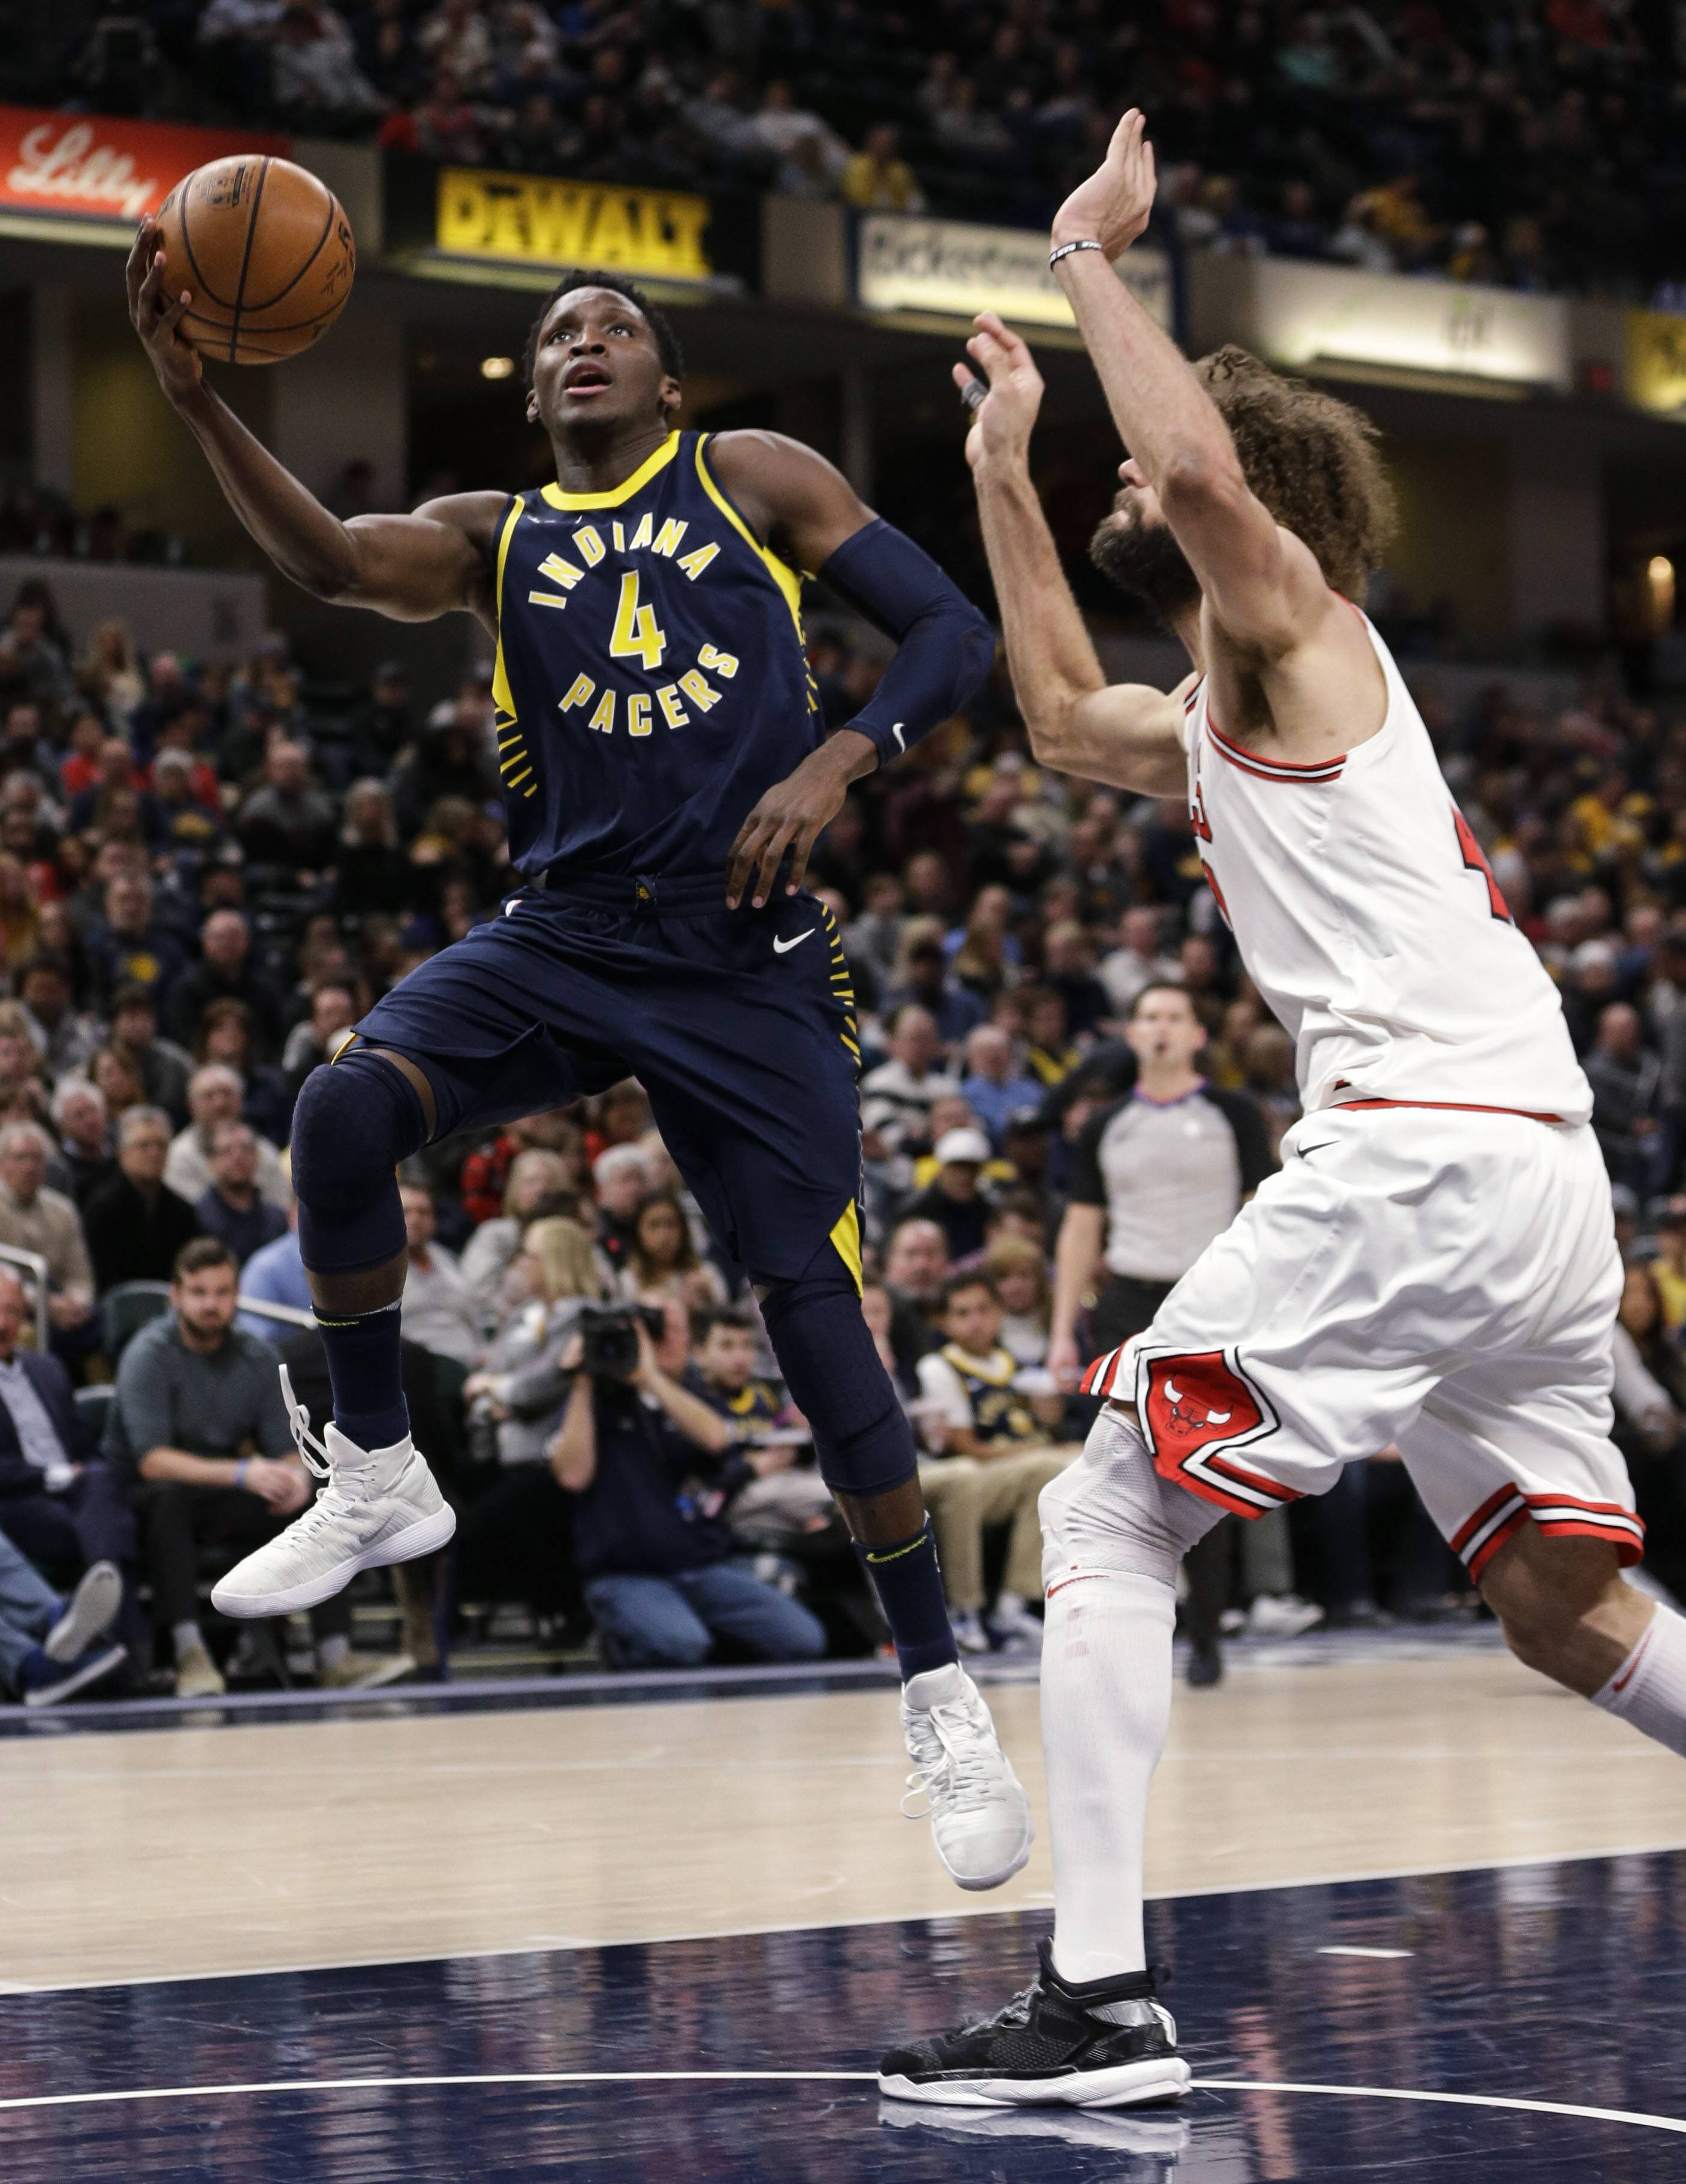 Road-weary Bulls get overwhelmed by Pacers, Oladipo